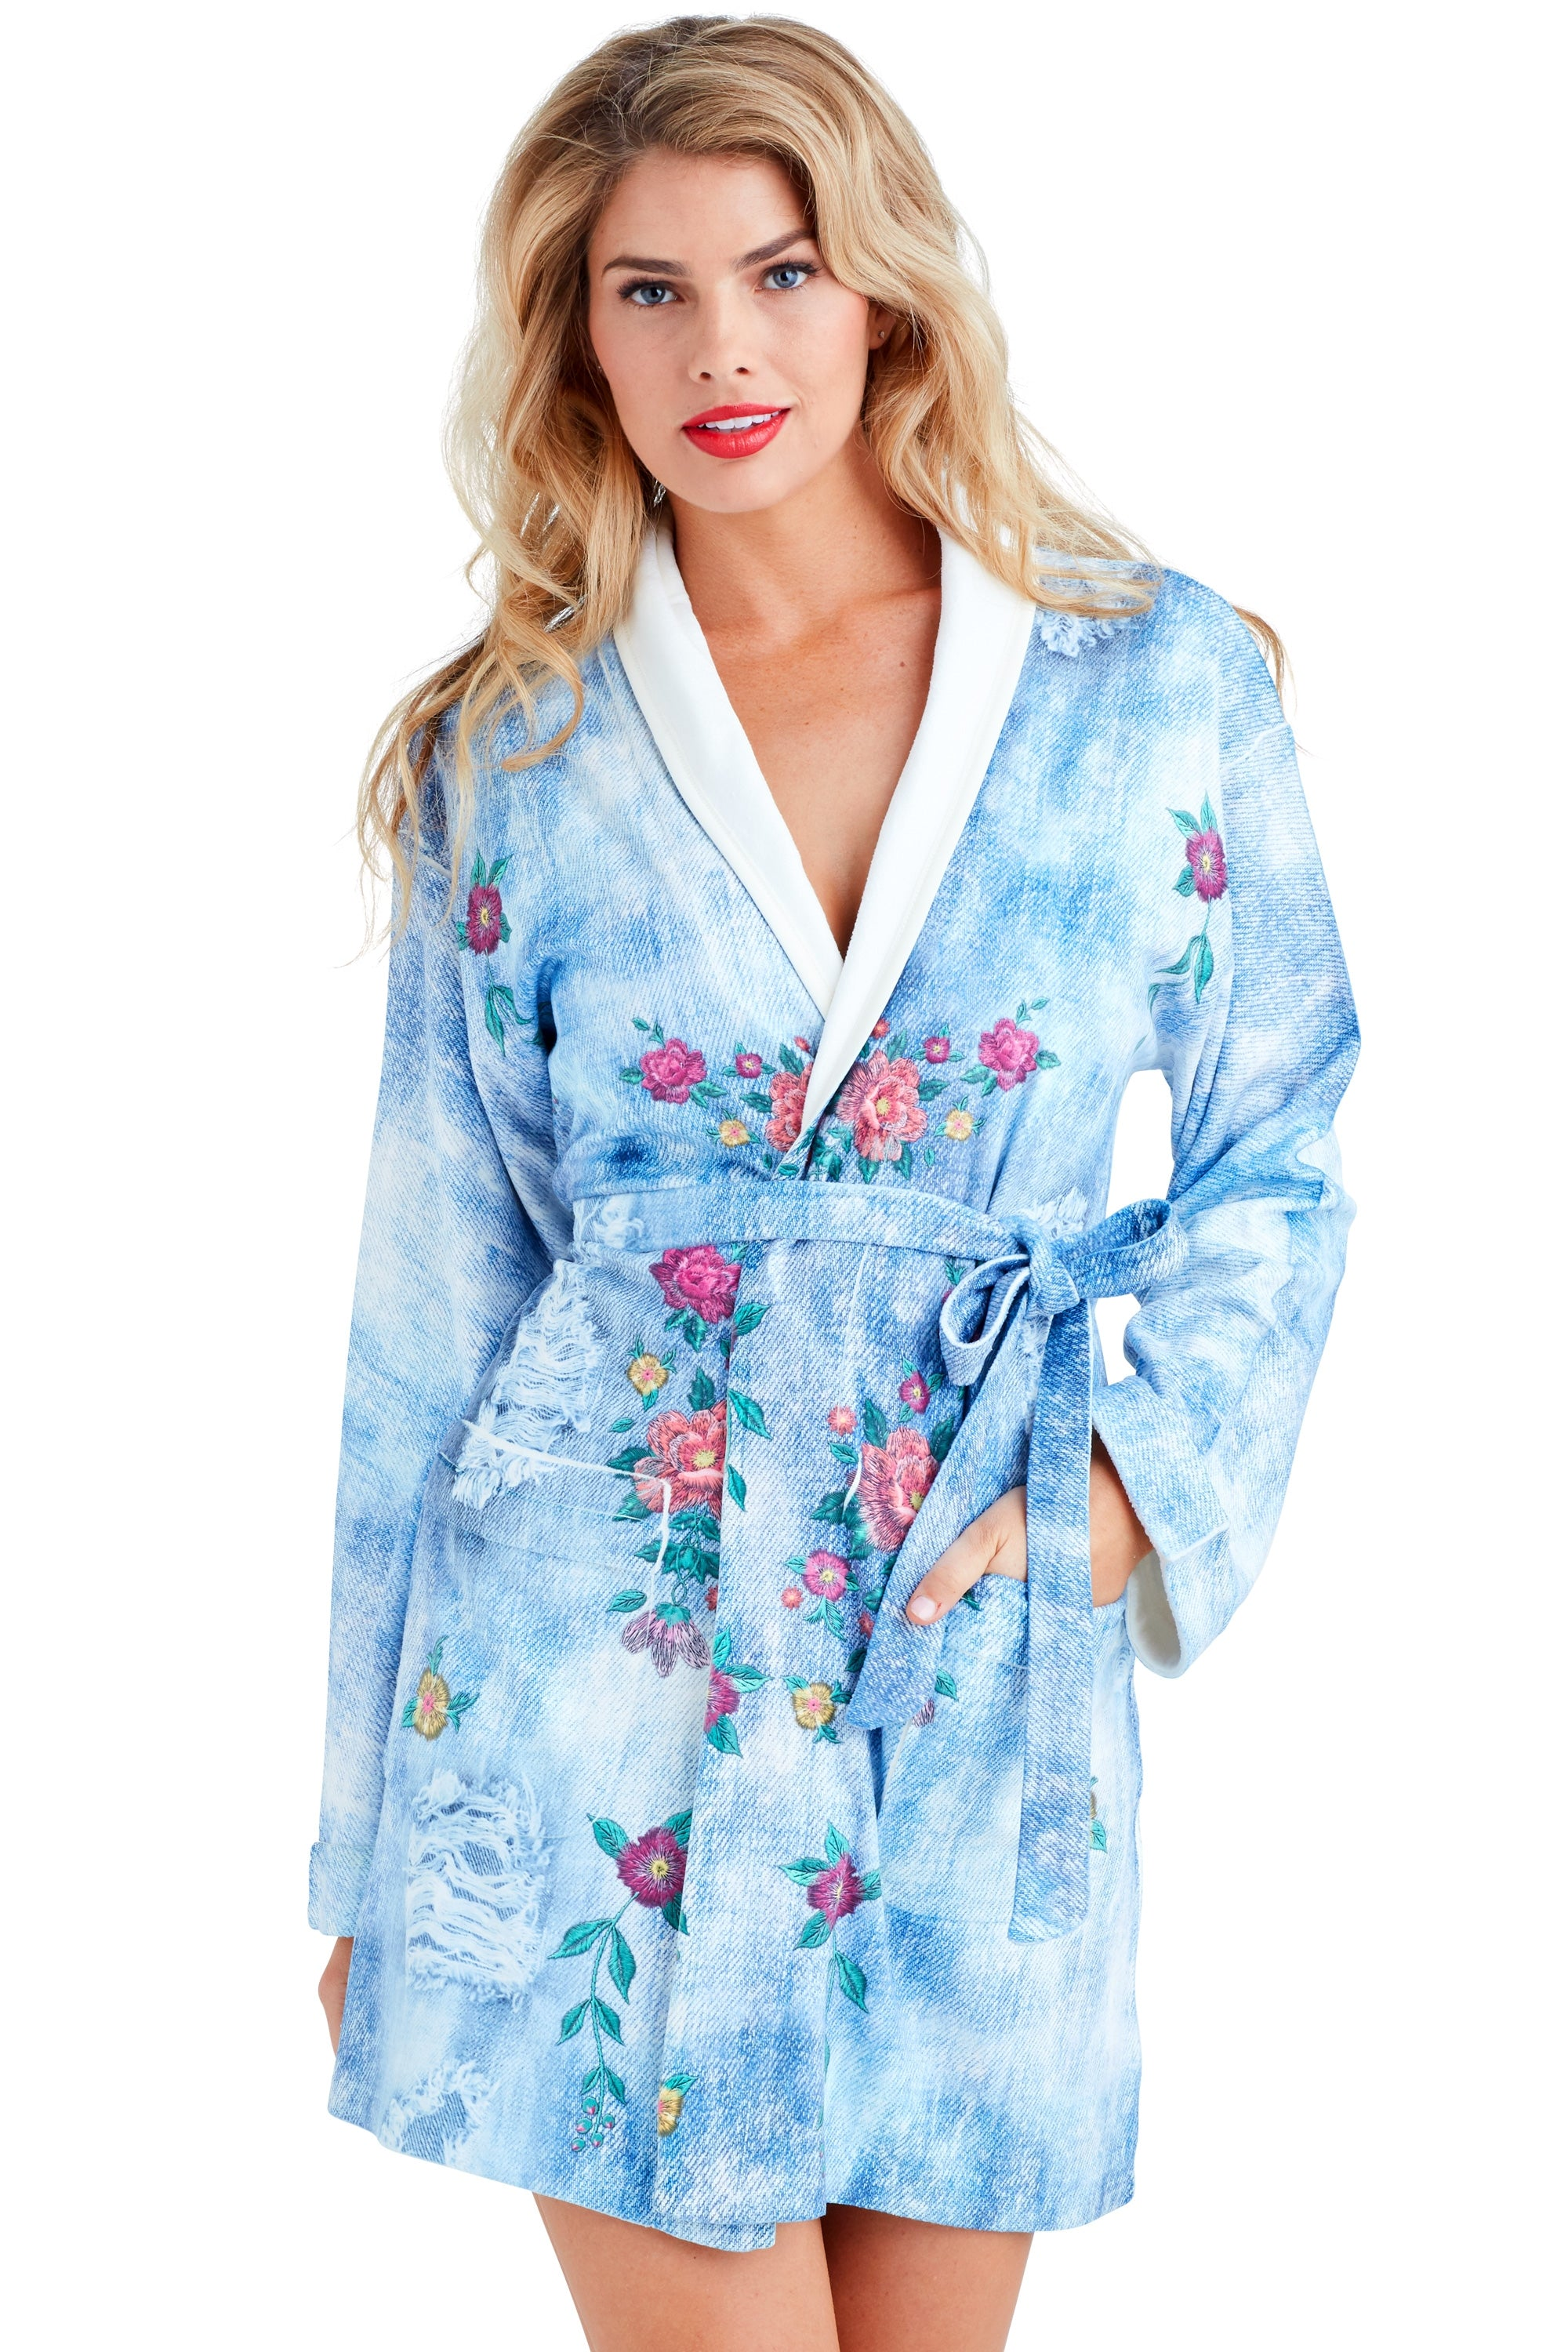 Blue Jean Short Robe